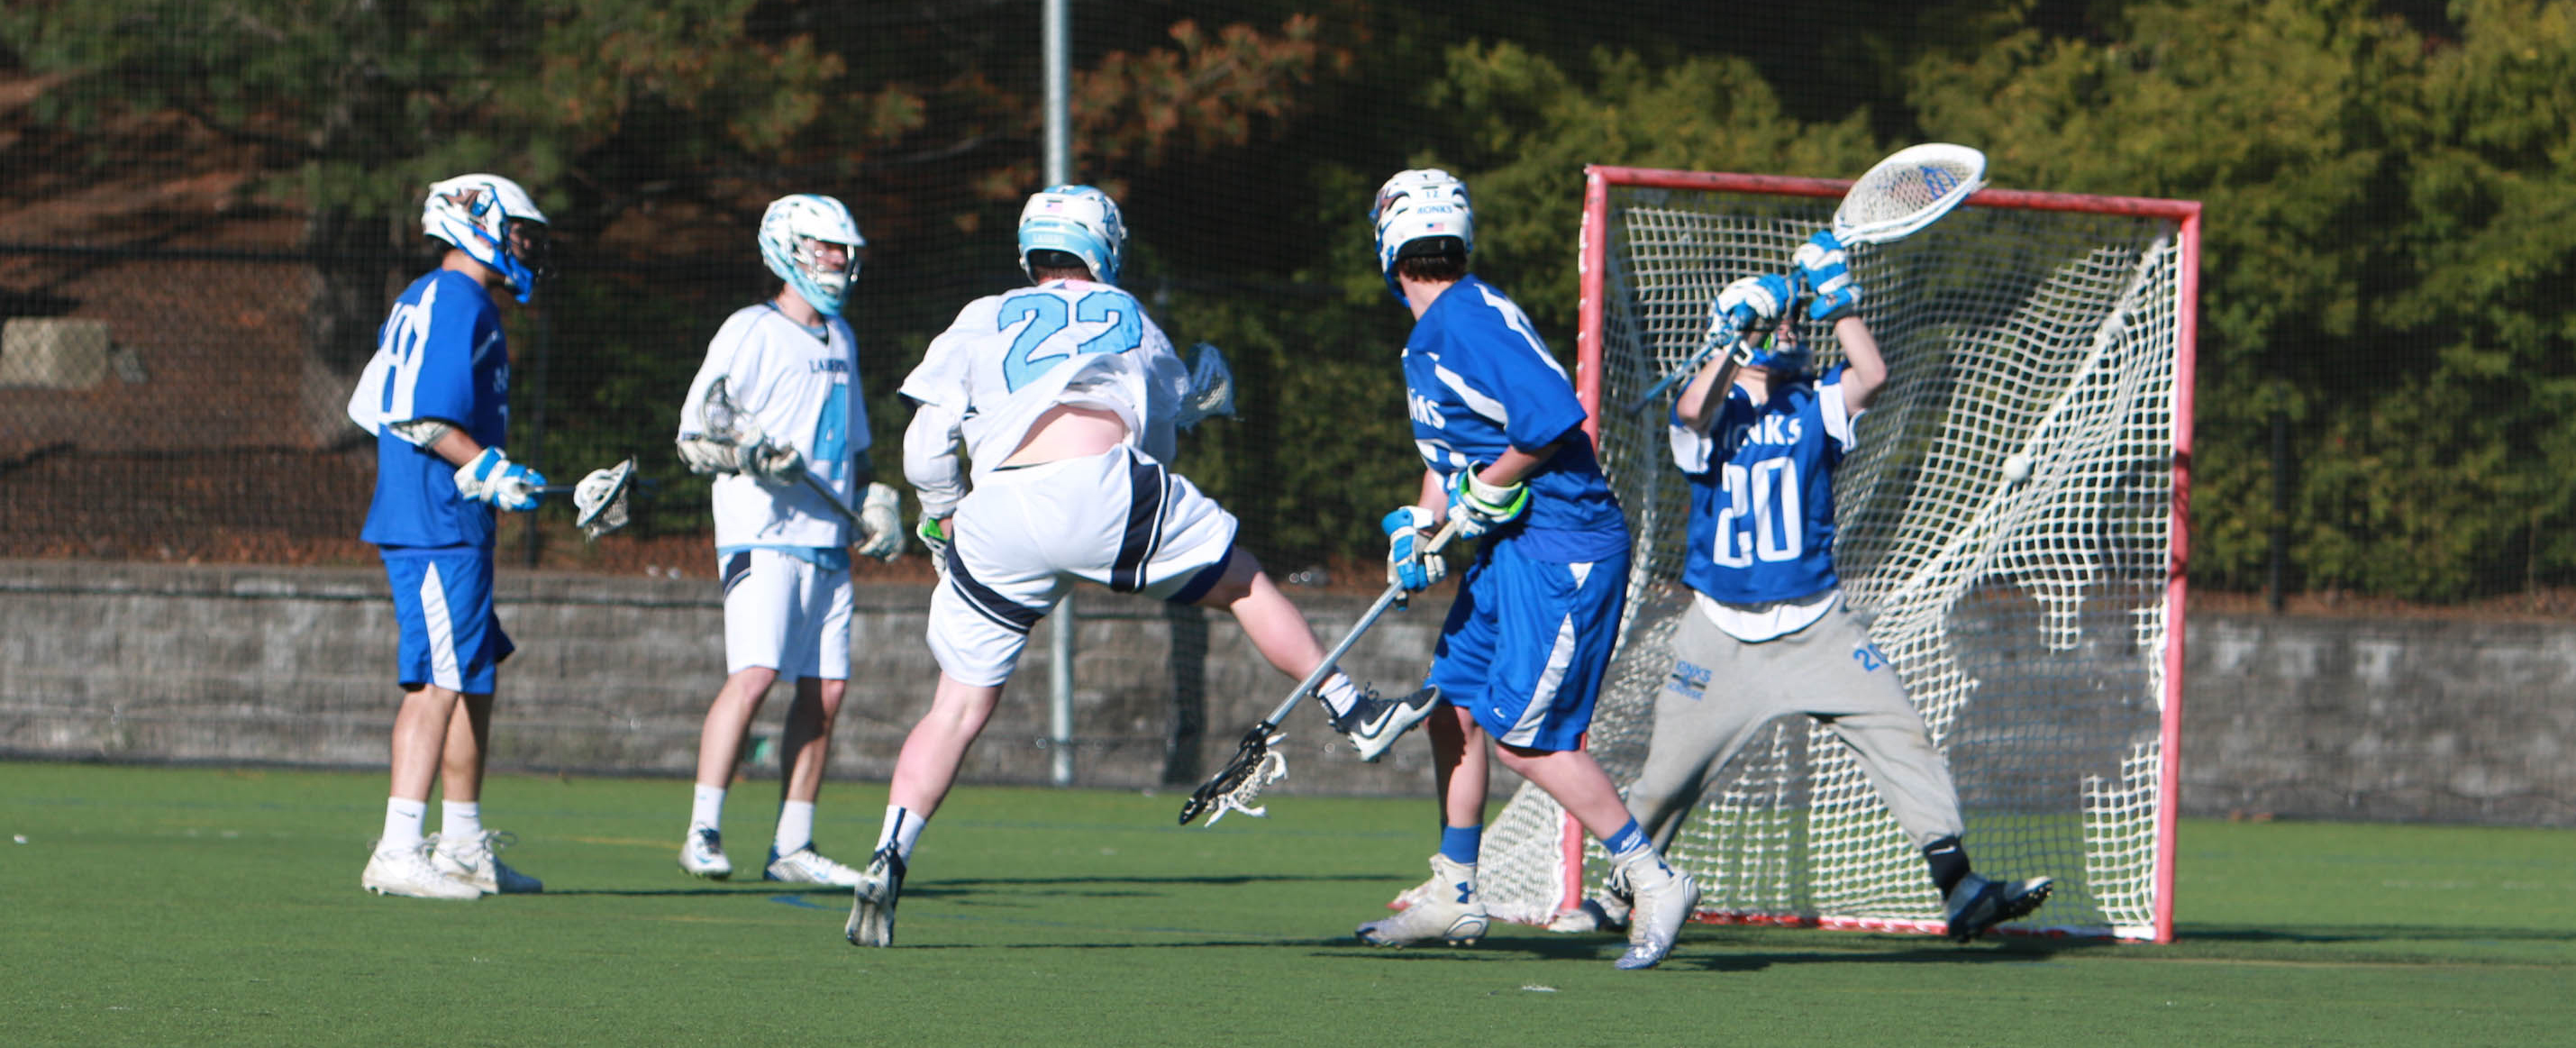 Gallant Propels Men's Lacrosse Past Monks 11-8